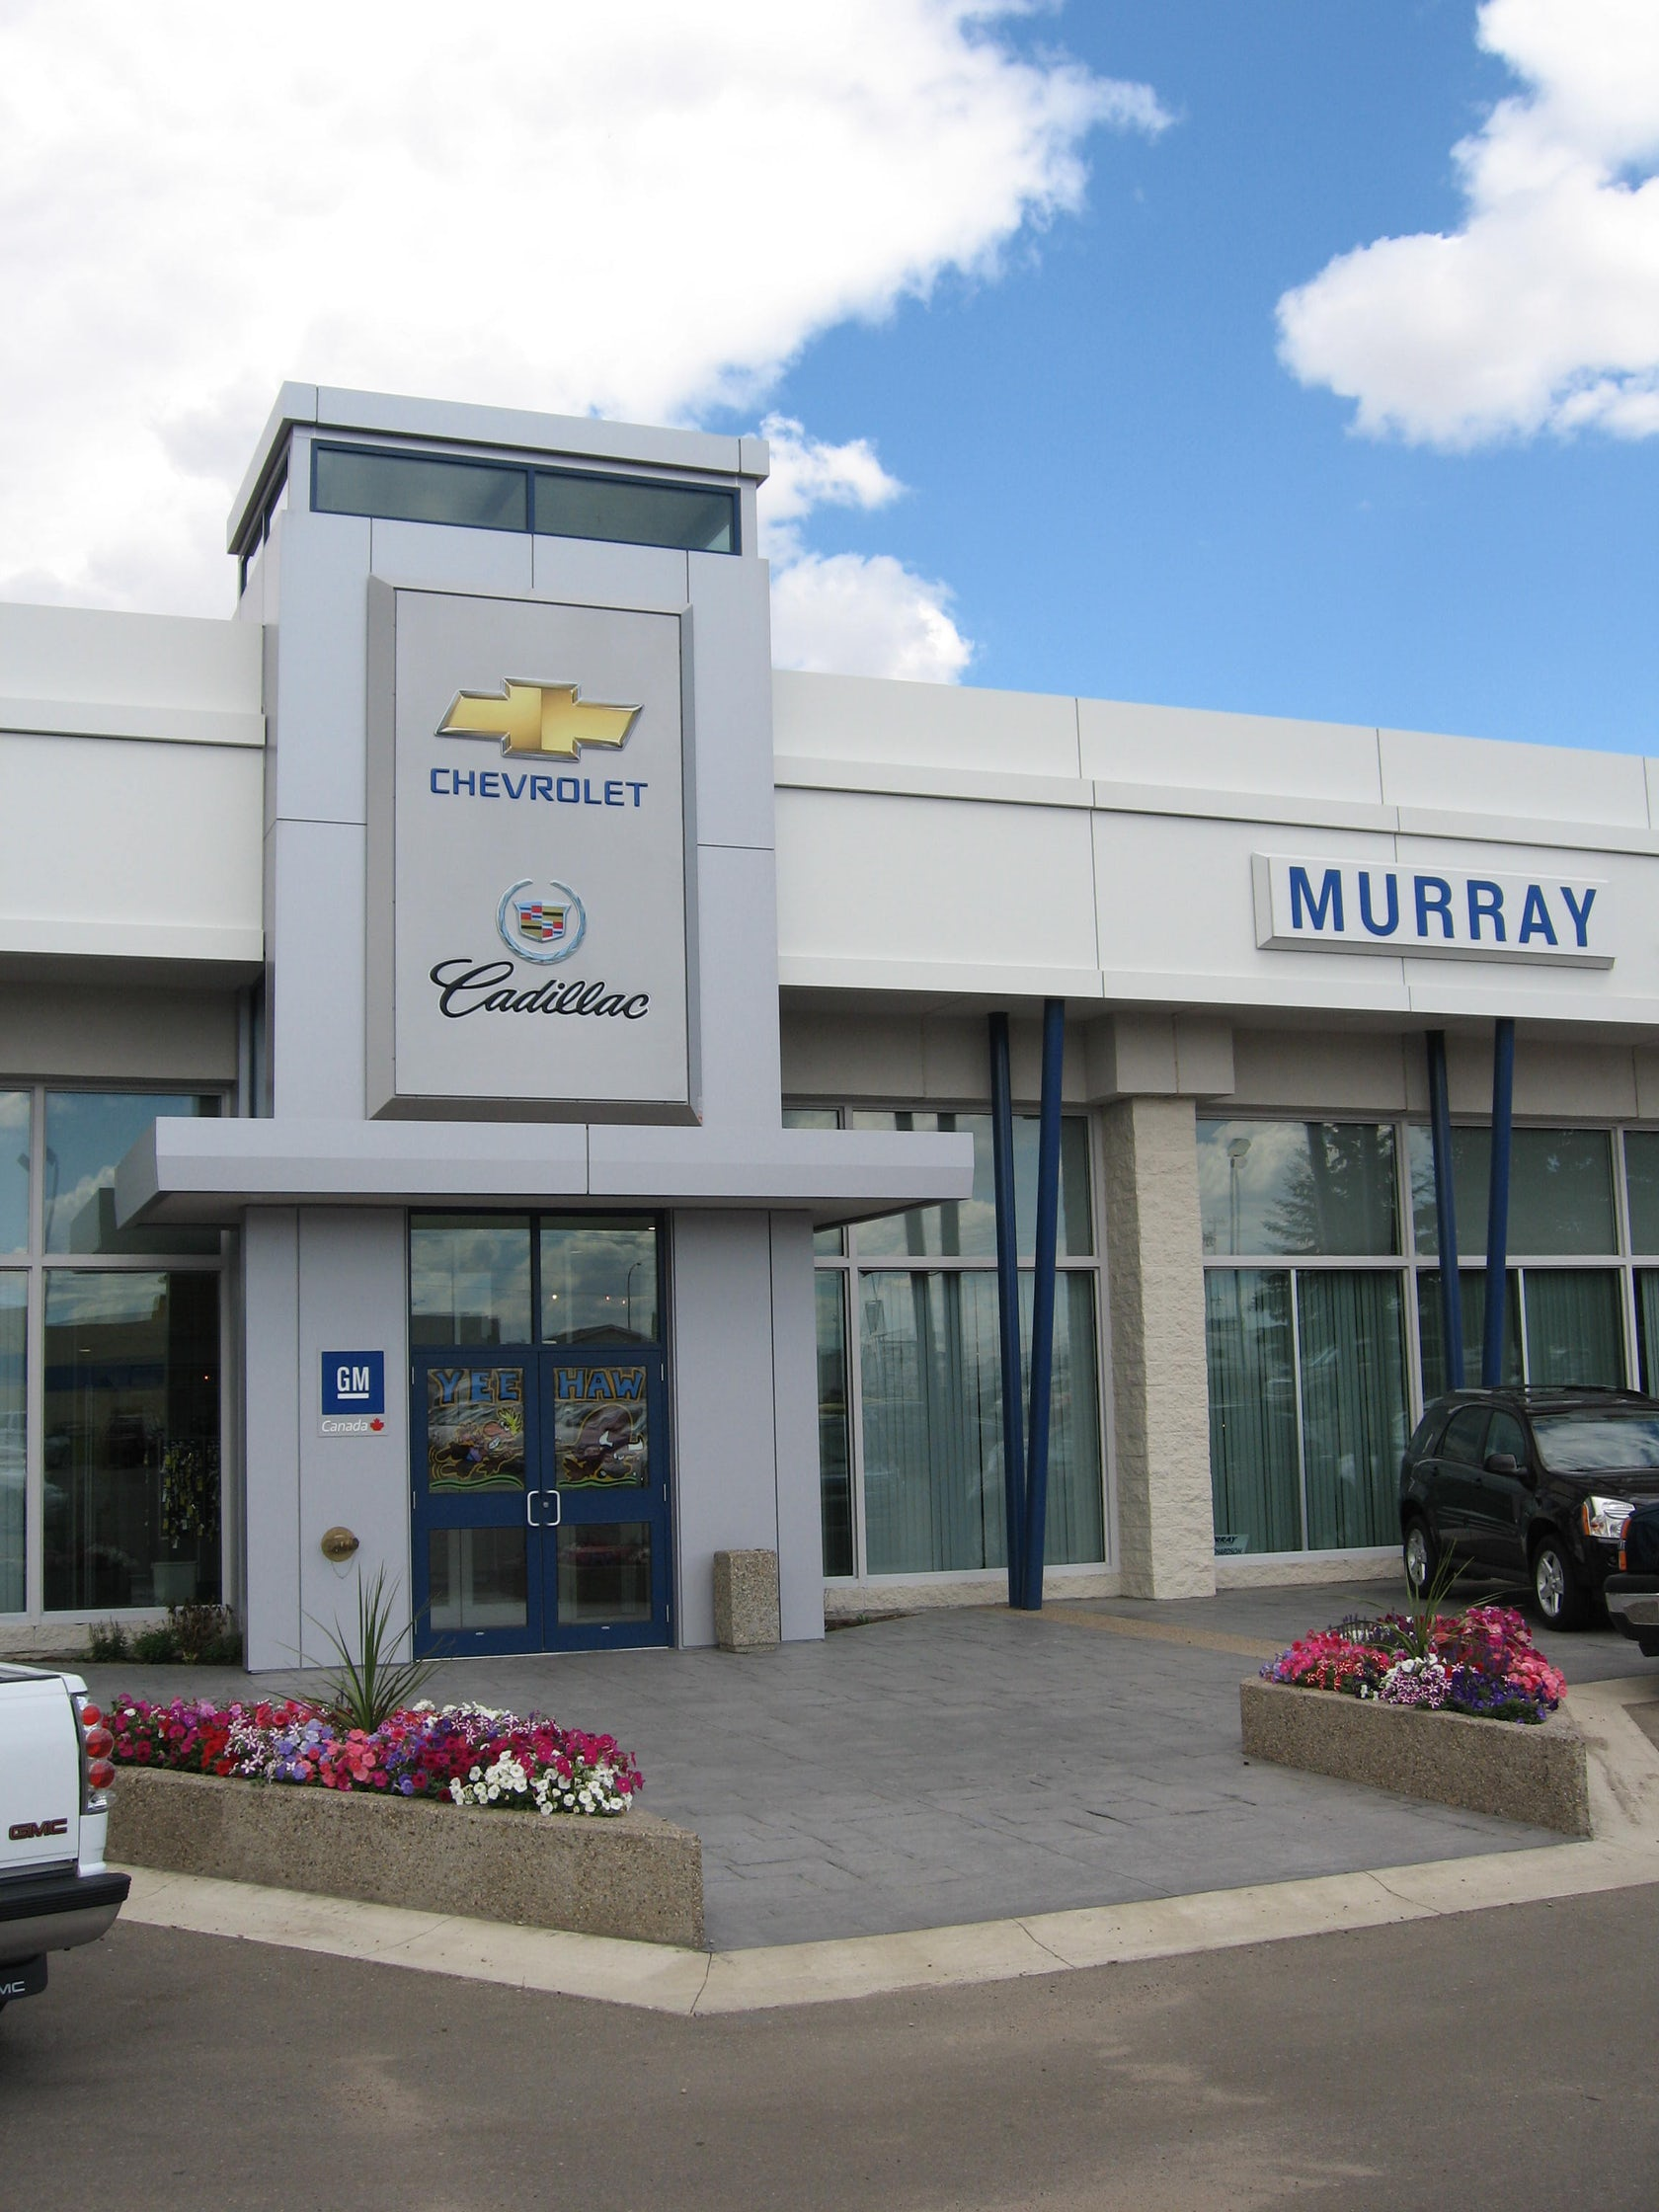 Murray Chevrolet & Cadillac Dealership Renovation - Architizer